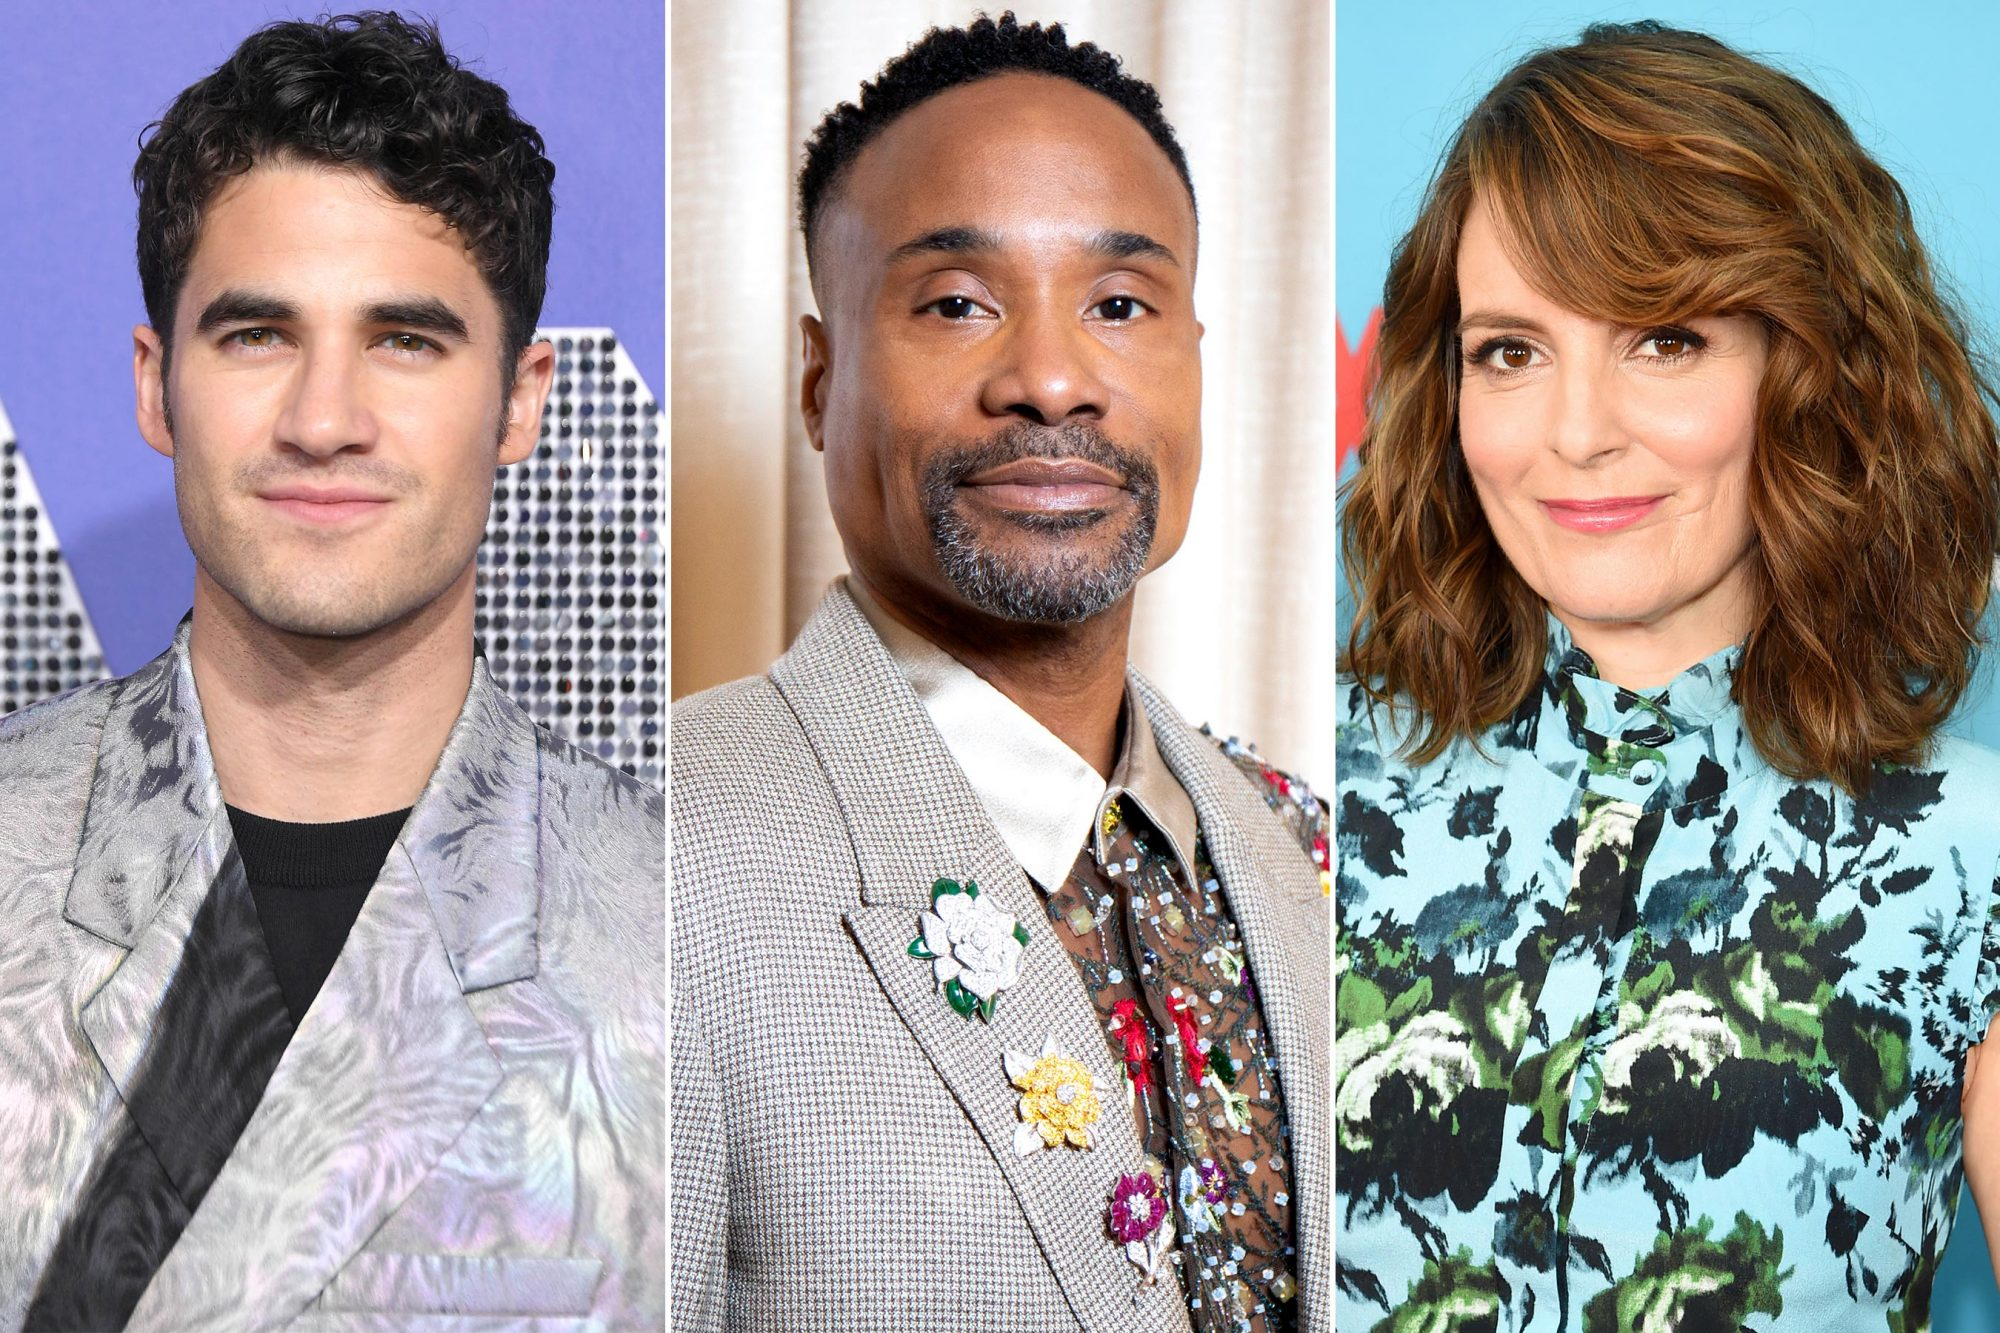 Darren Criss, Billy Porter, and Tina Fey